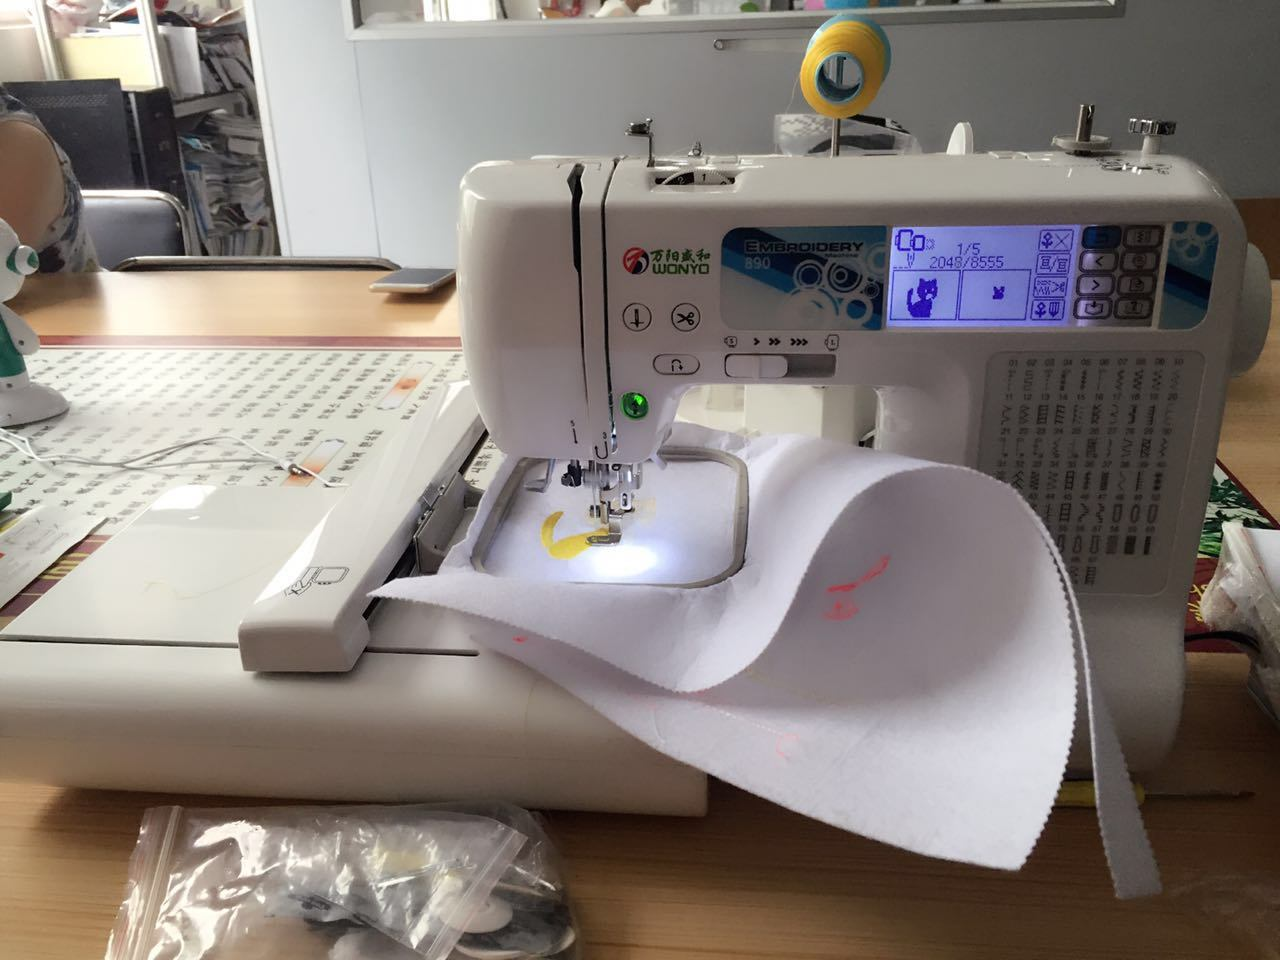 Home Use Embroidery and Sewing Machine for Small Shop